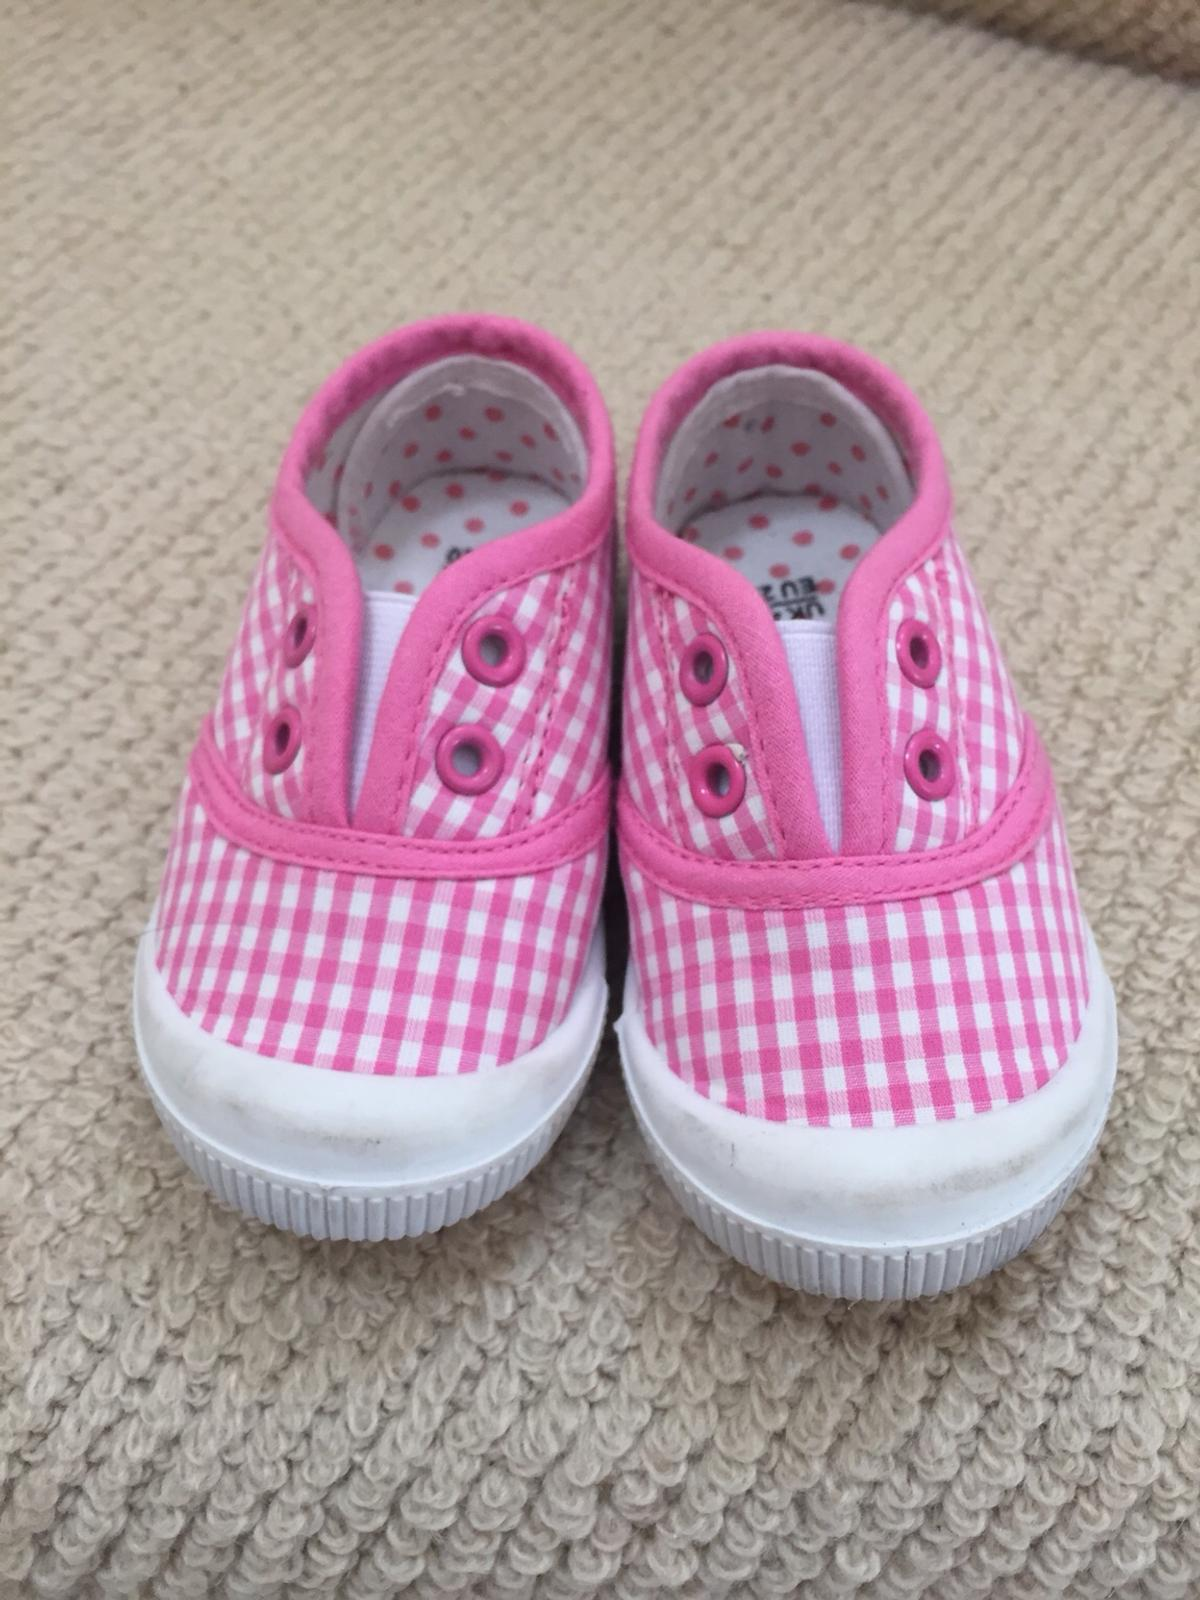 59786c8c9a7ab Girls pink/ white shoes Size 3-4